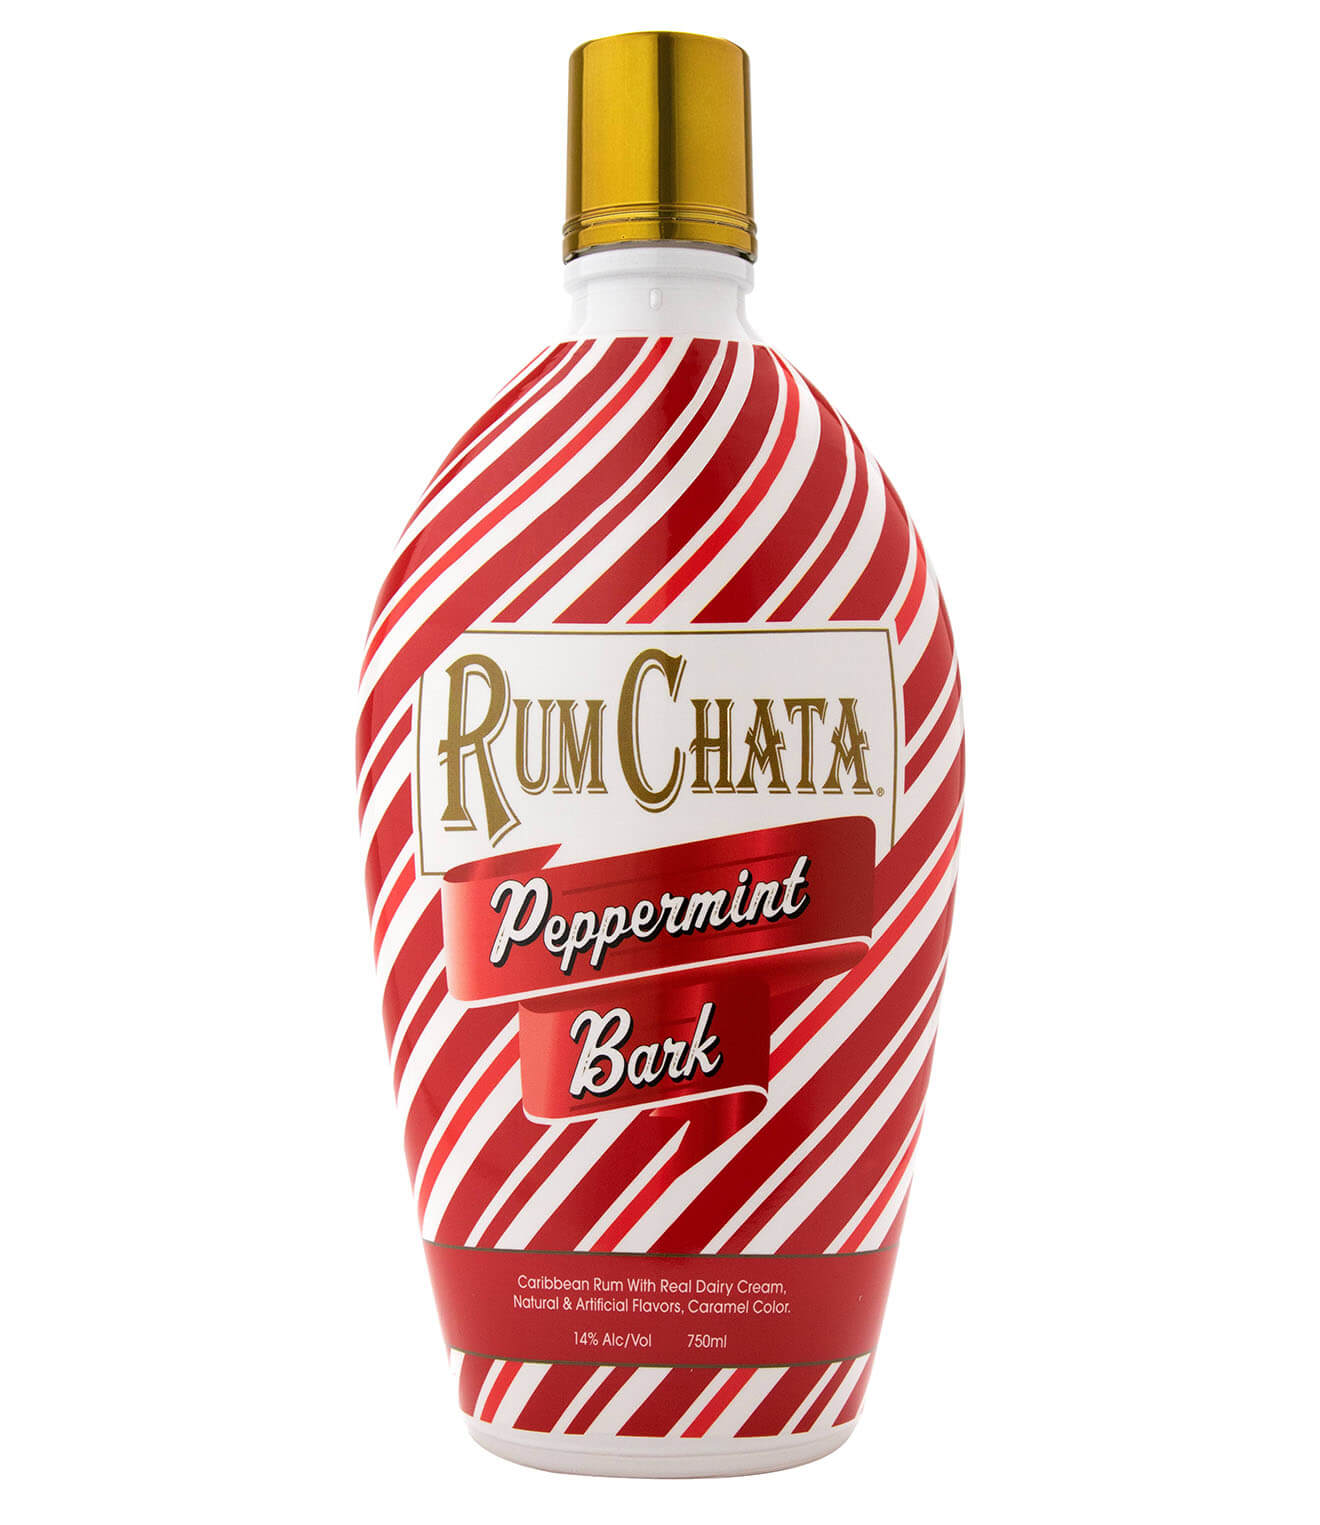 RumChata Peppermint Bark, bottle on white